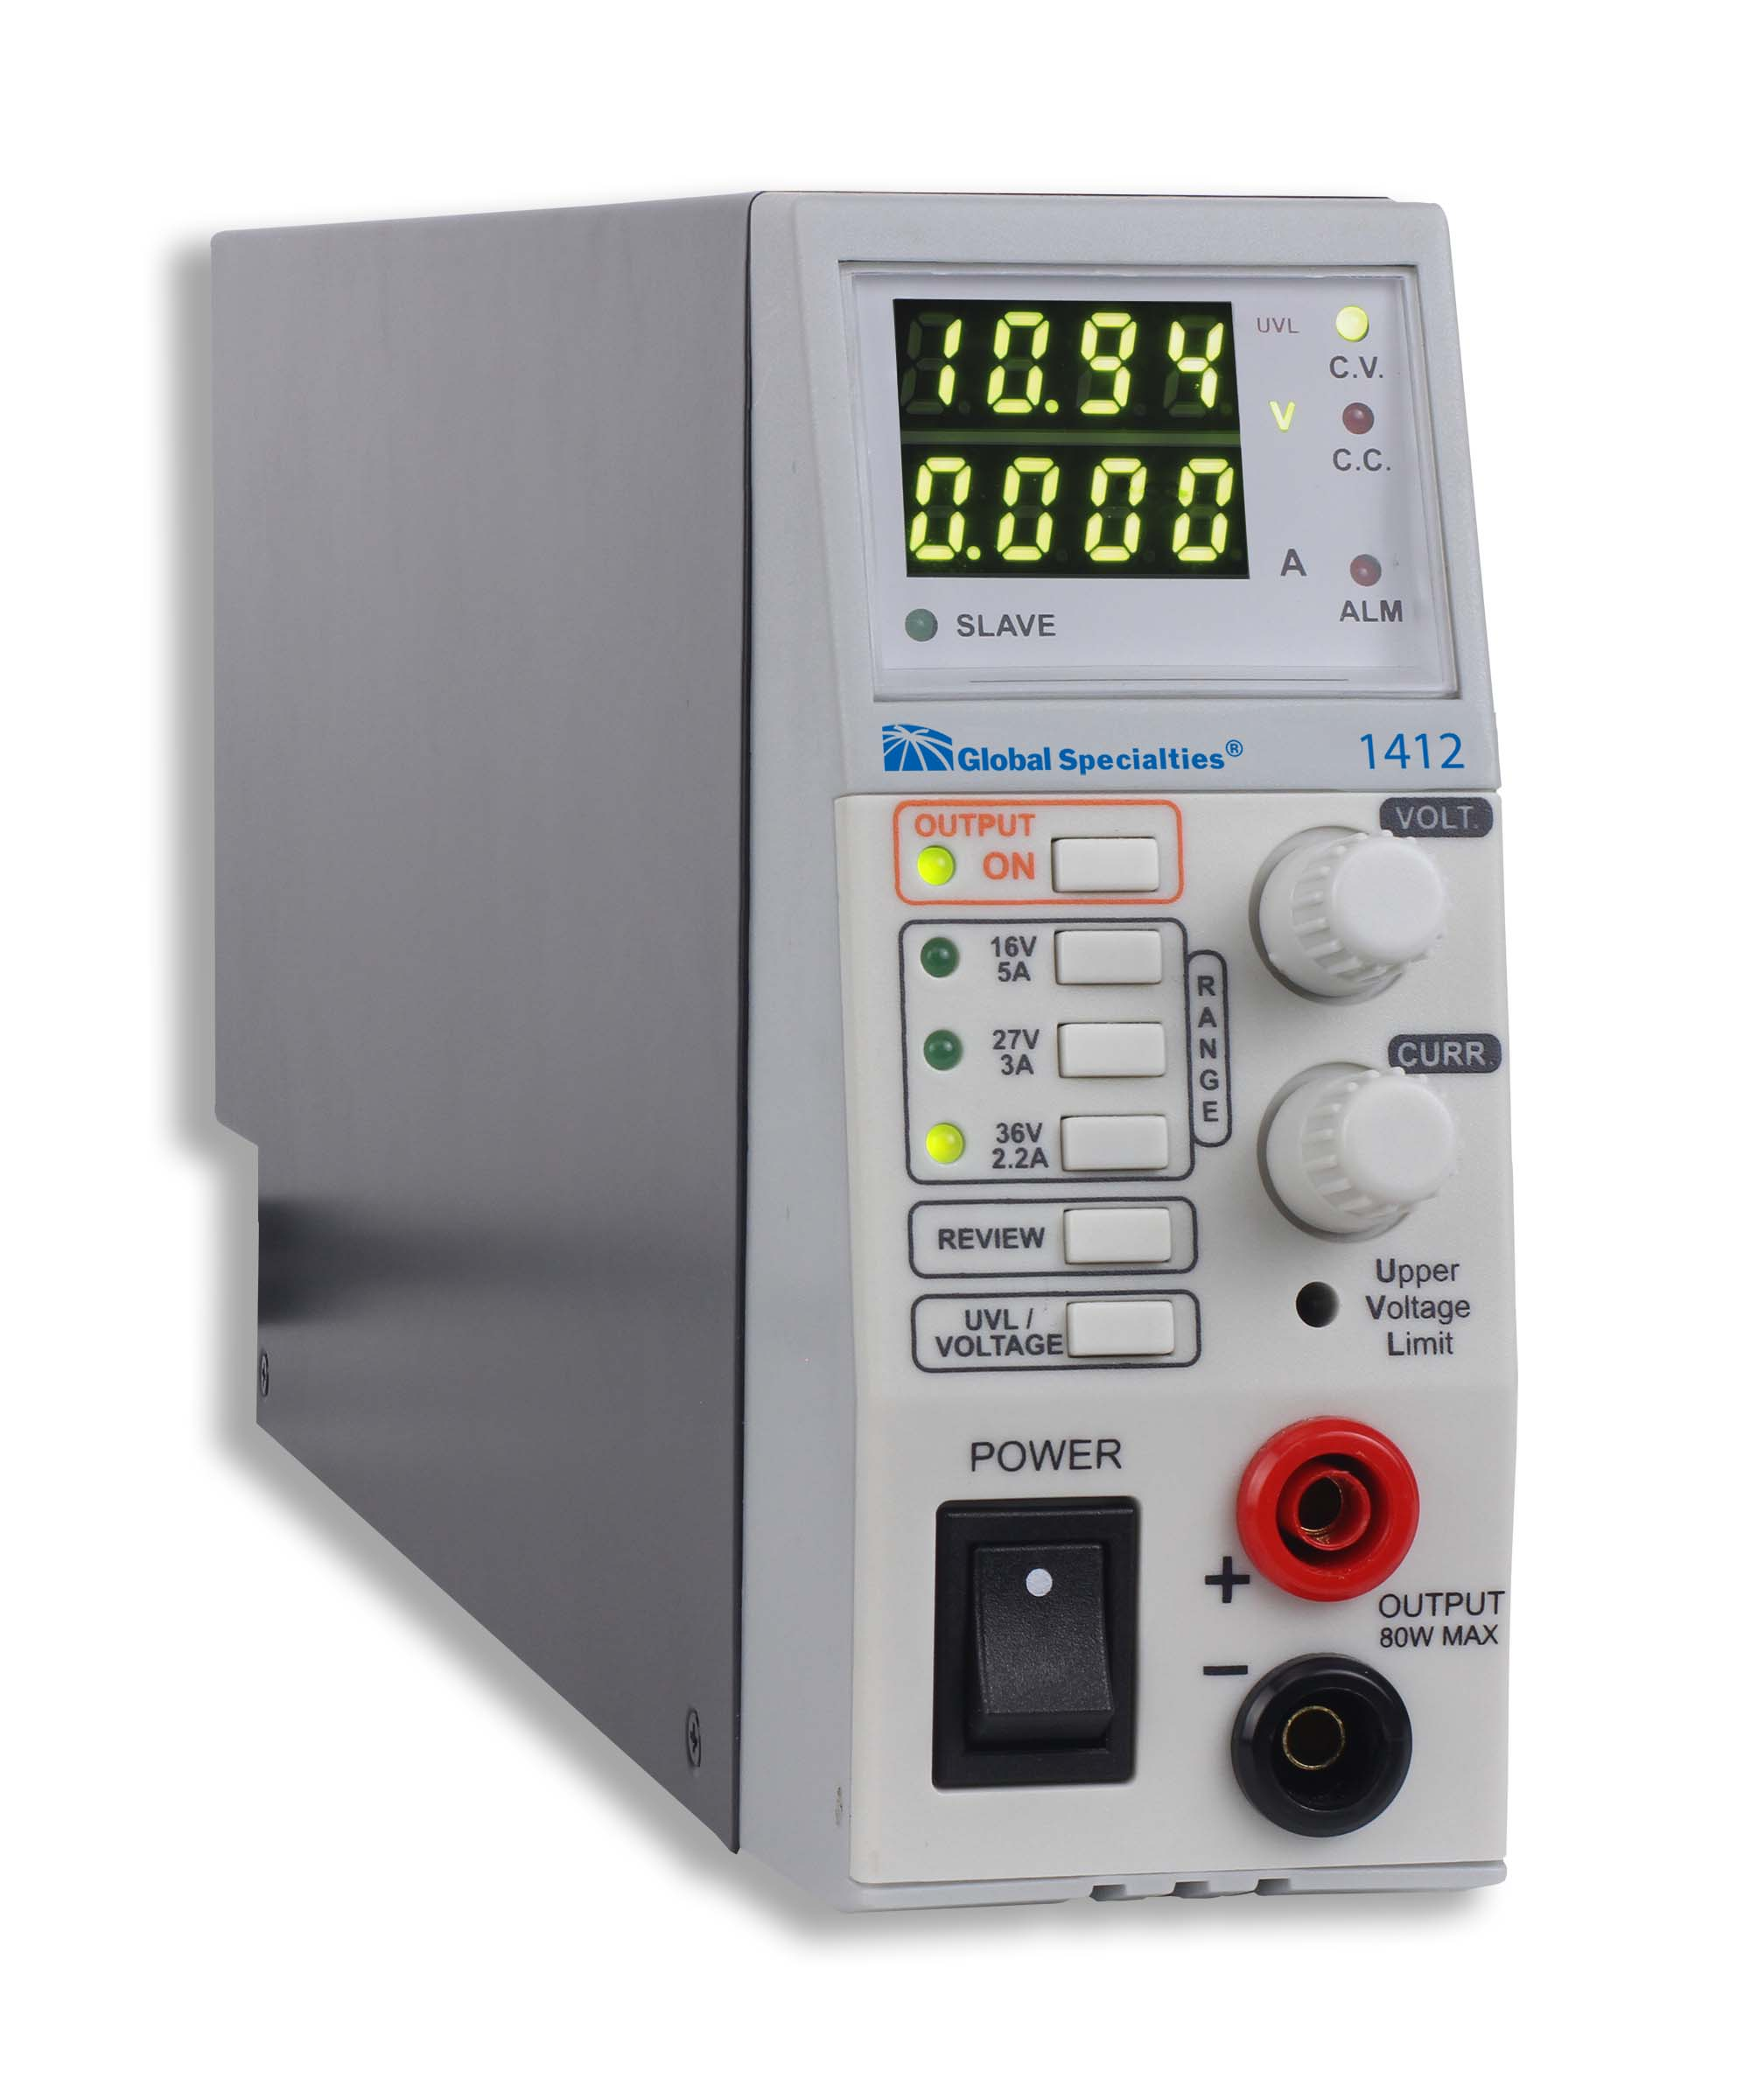 Power Supplies And Control Supply Volt 1412 80 W Triple Range Switching Dc 16v 5a 27v 3a 36v 22a